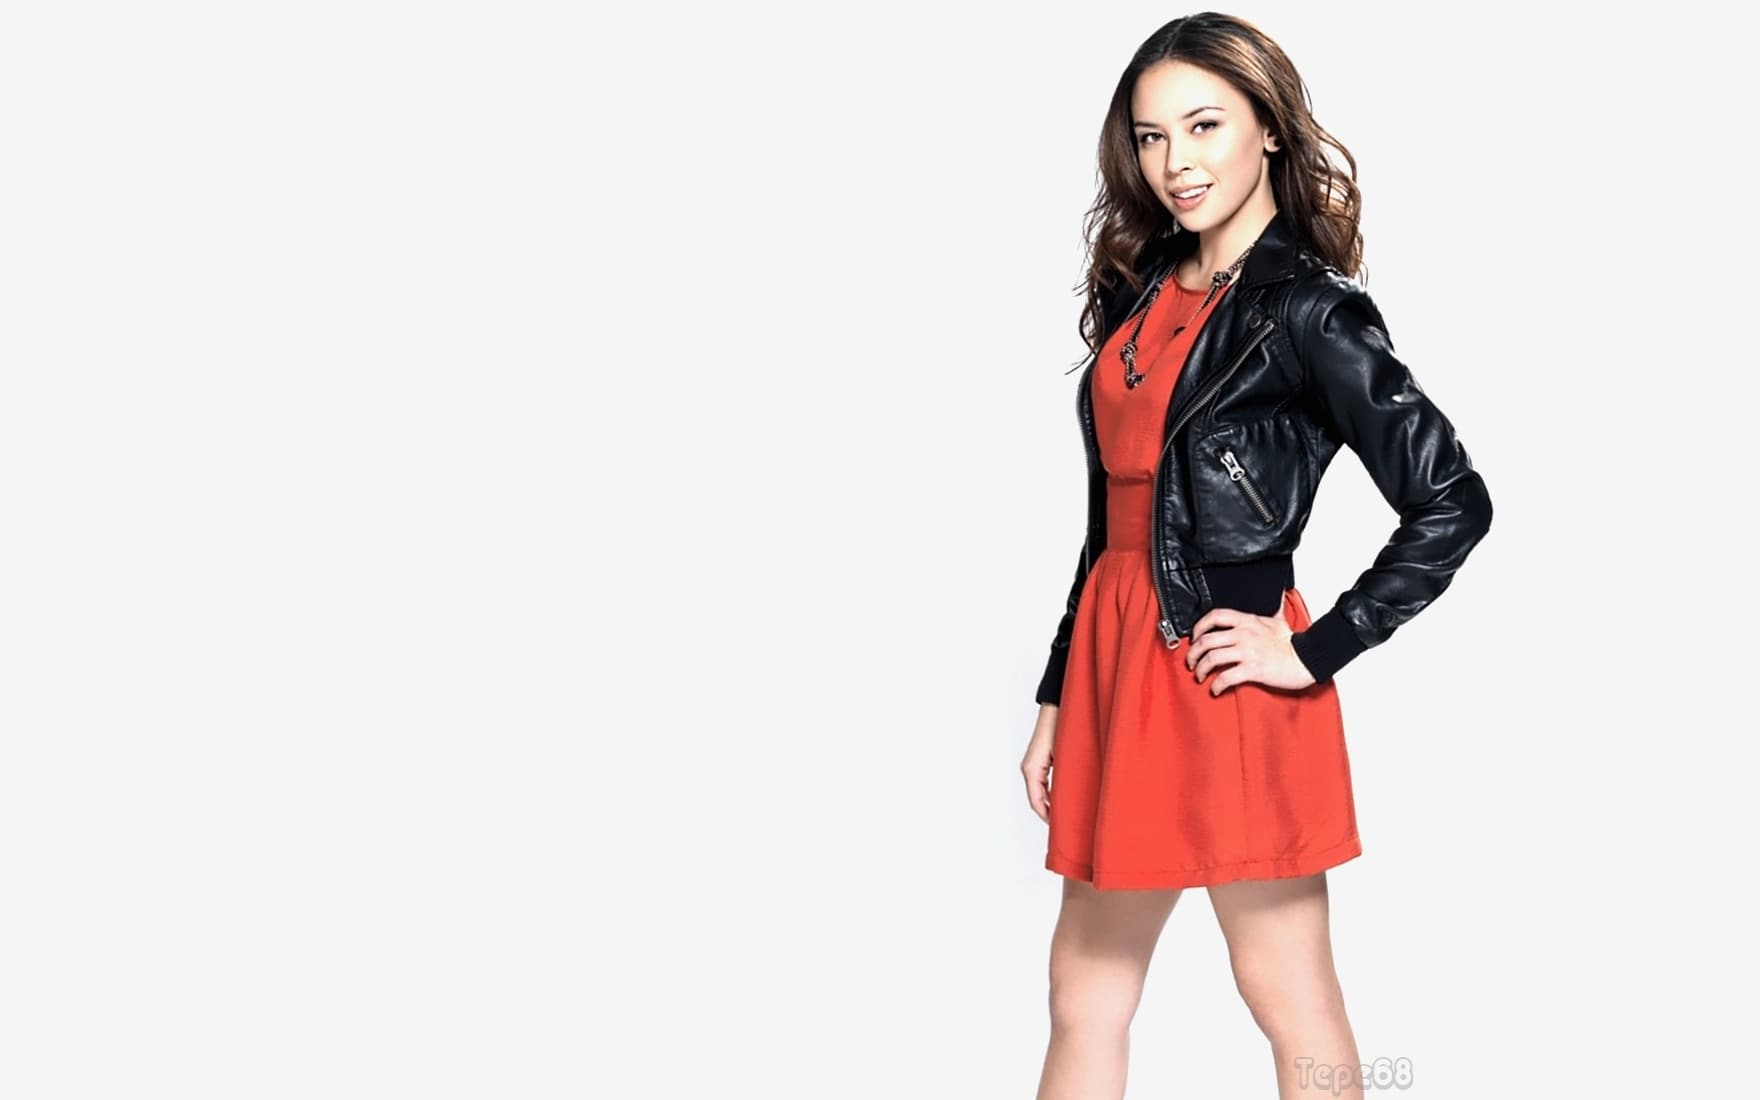 Malese Jow Wallpapers hd